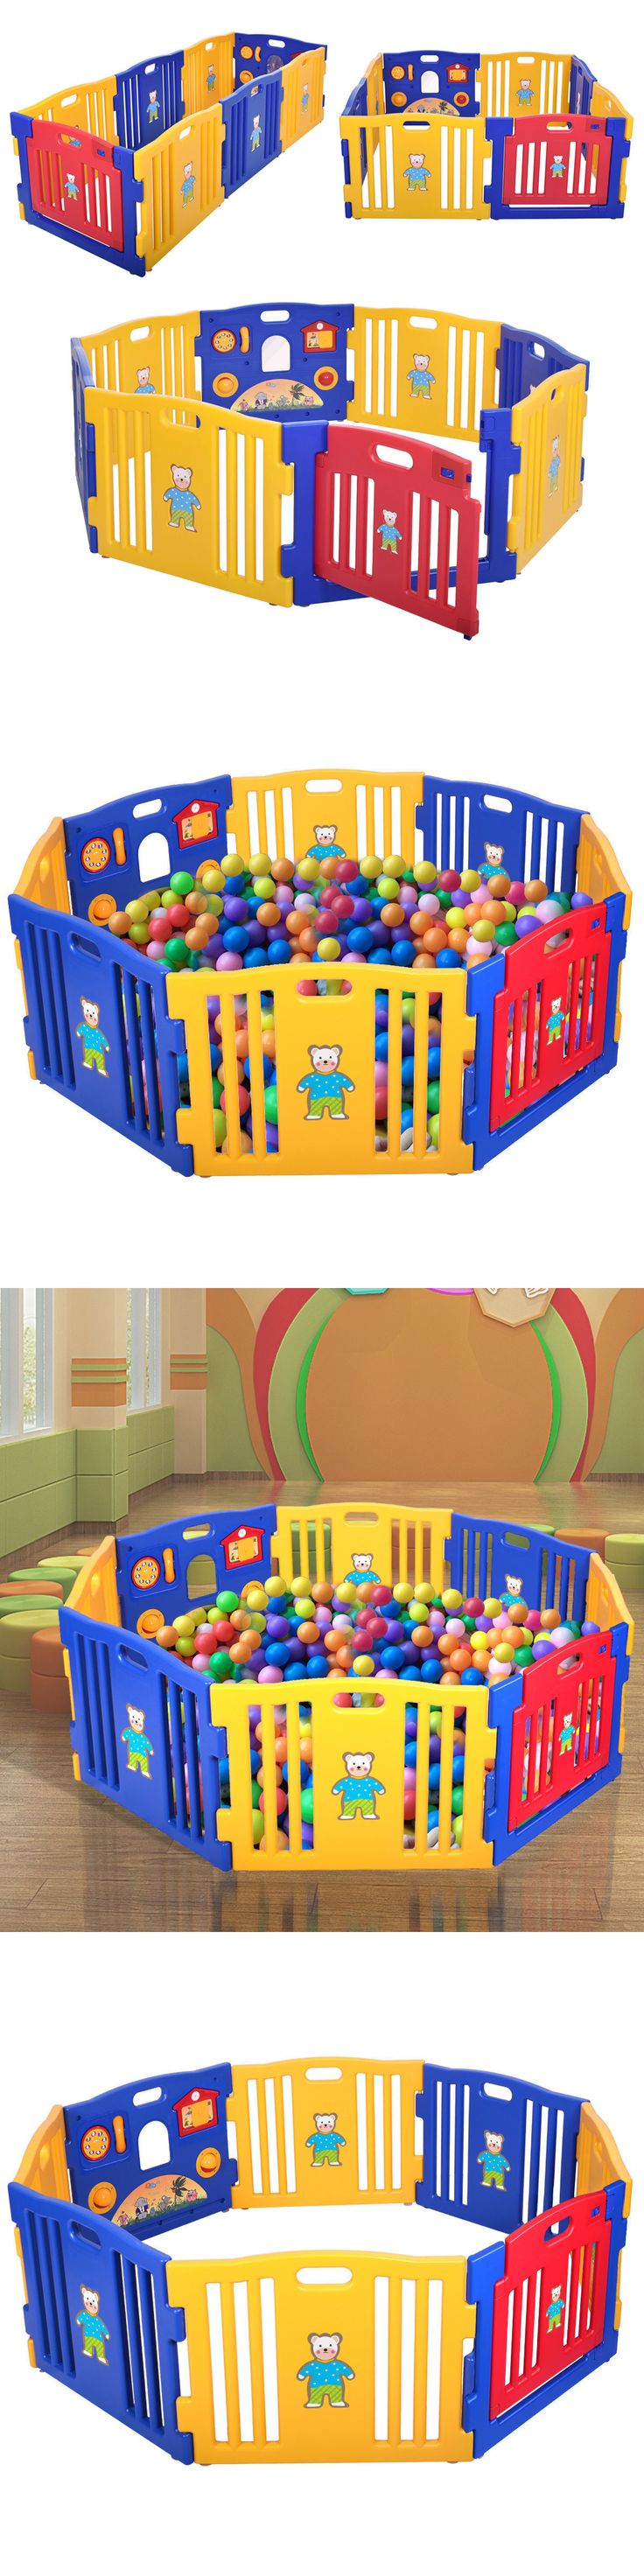 Baby Gear 100223: New Baby Playpen Kids 8 Panel Safety Play Center Yard Home Indoor Outdoor Pen -> BUY IT NOW ONLY: $84.99 on eBay!